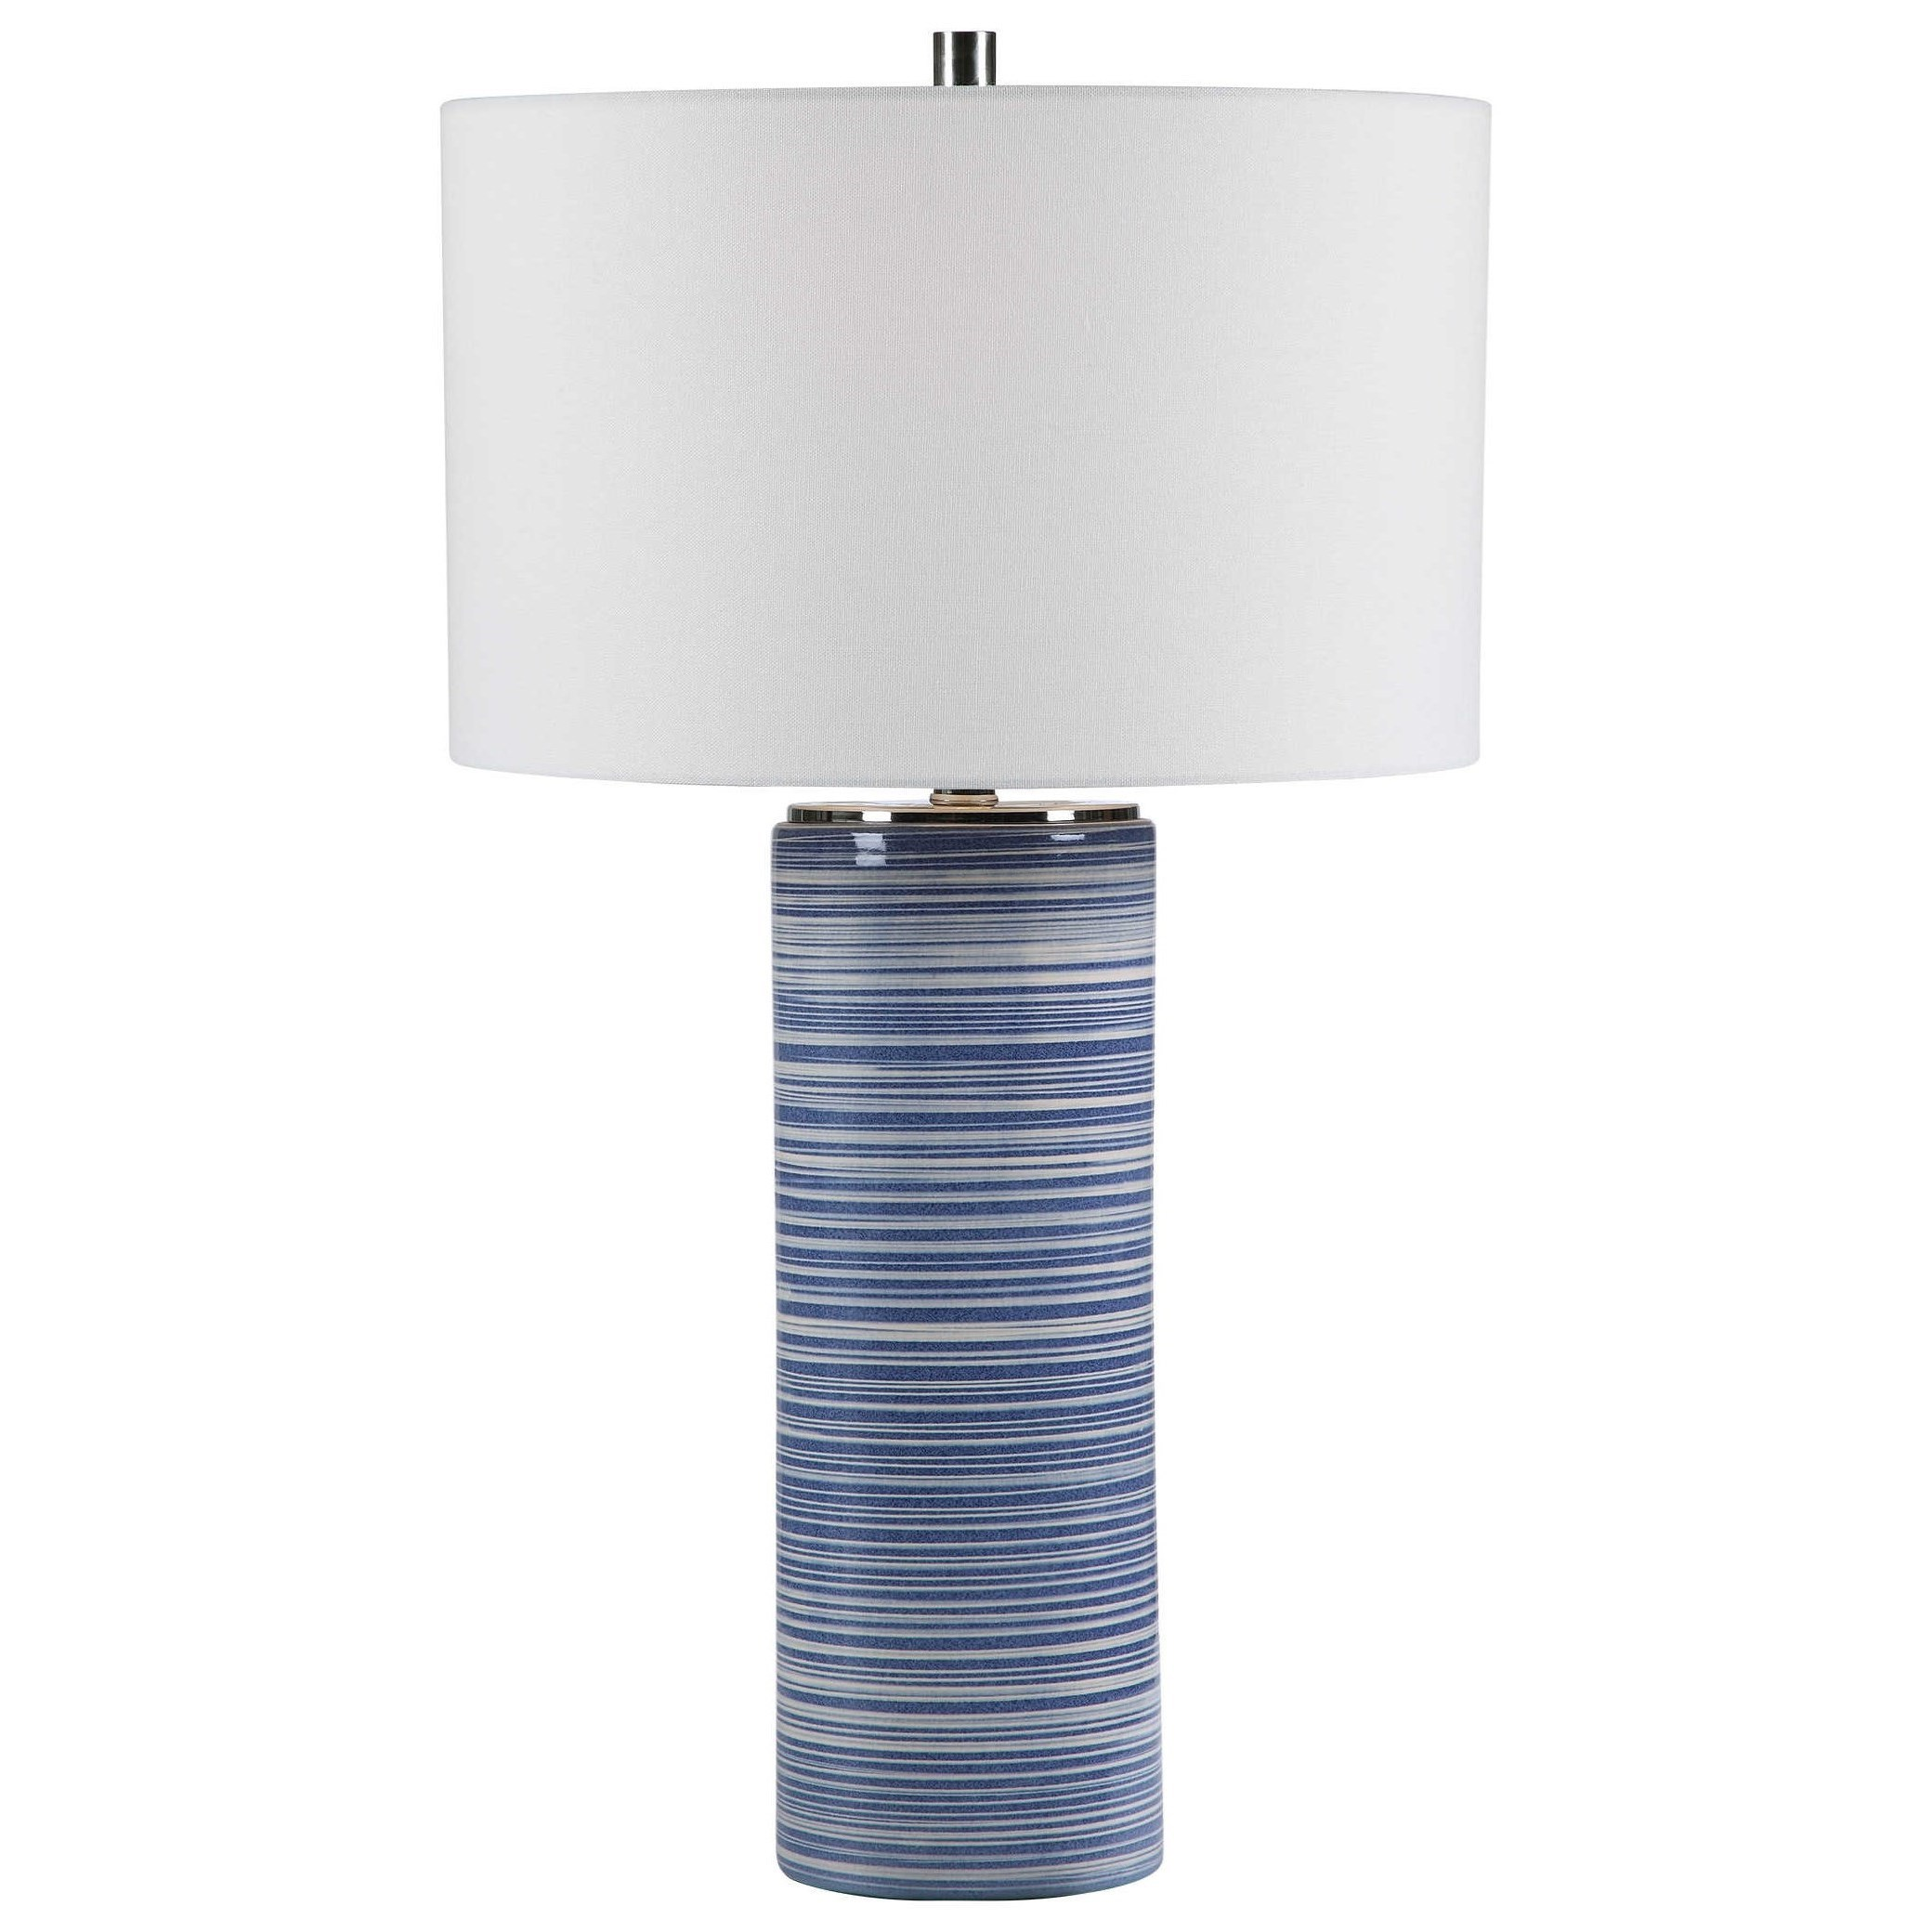 Table Lamps Montauk Striped Table Lamp by Uttermost at Suburban Furniture